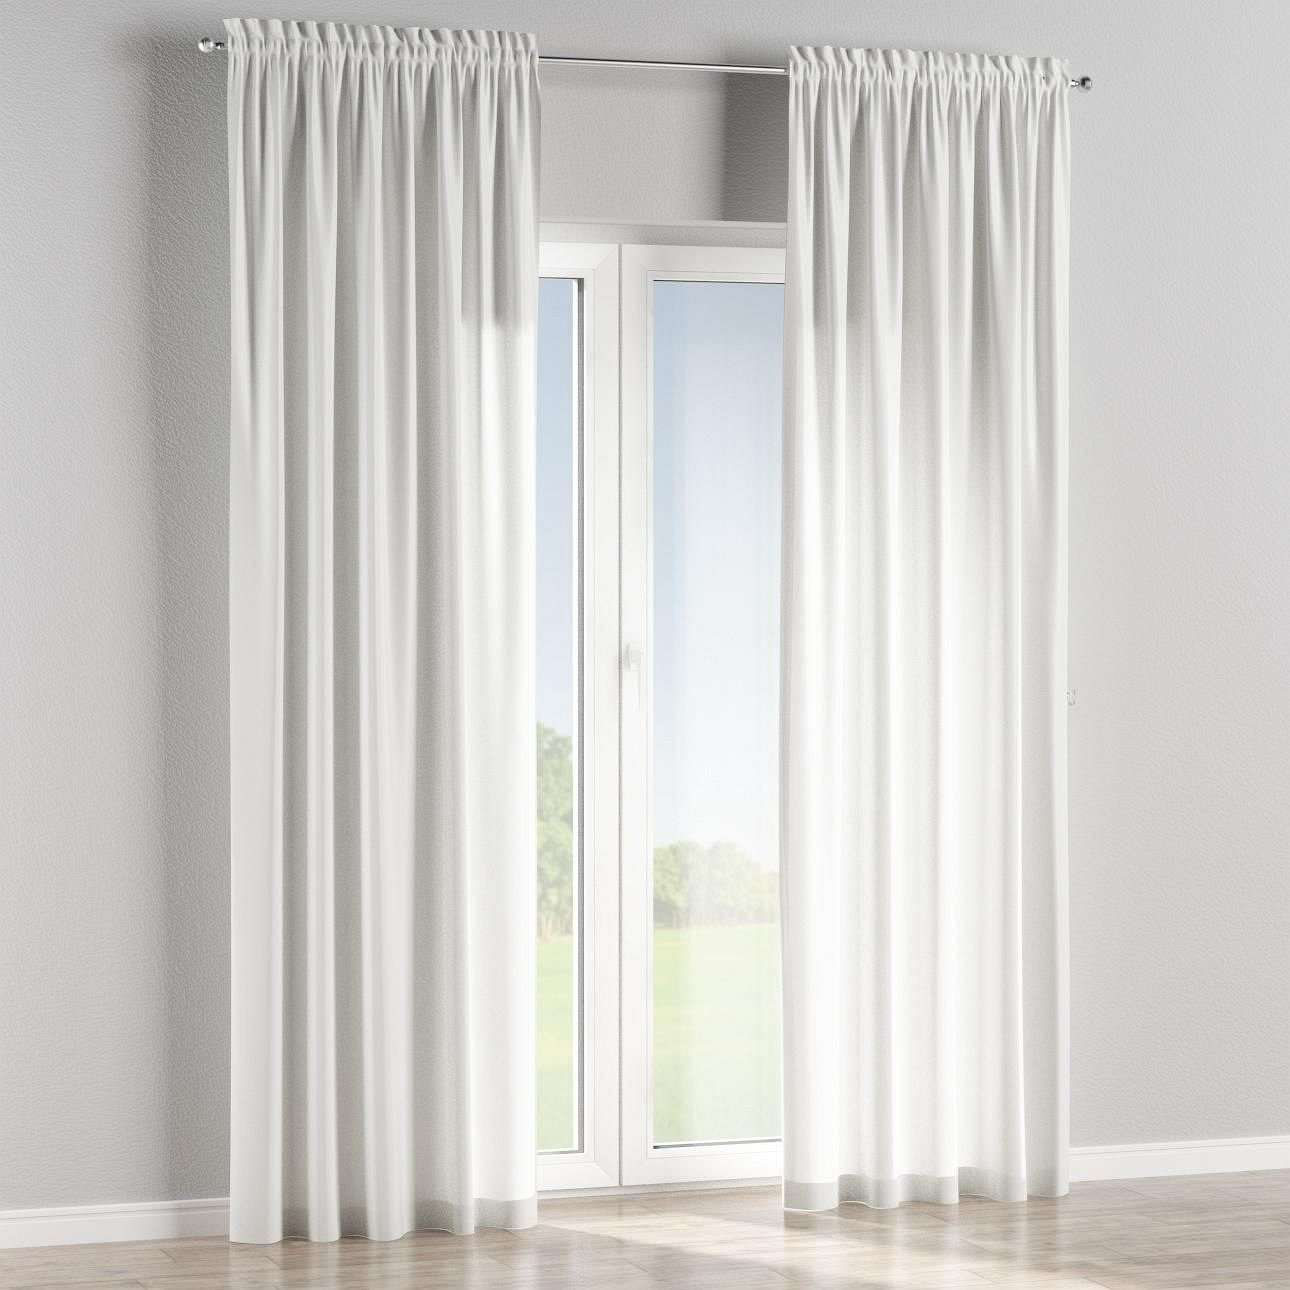 Slot and frill lined curtains in collection Comic Book & Geo Prints, fabric: 135-04